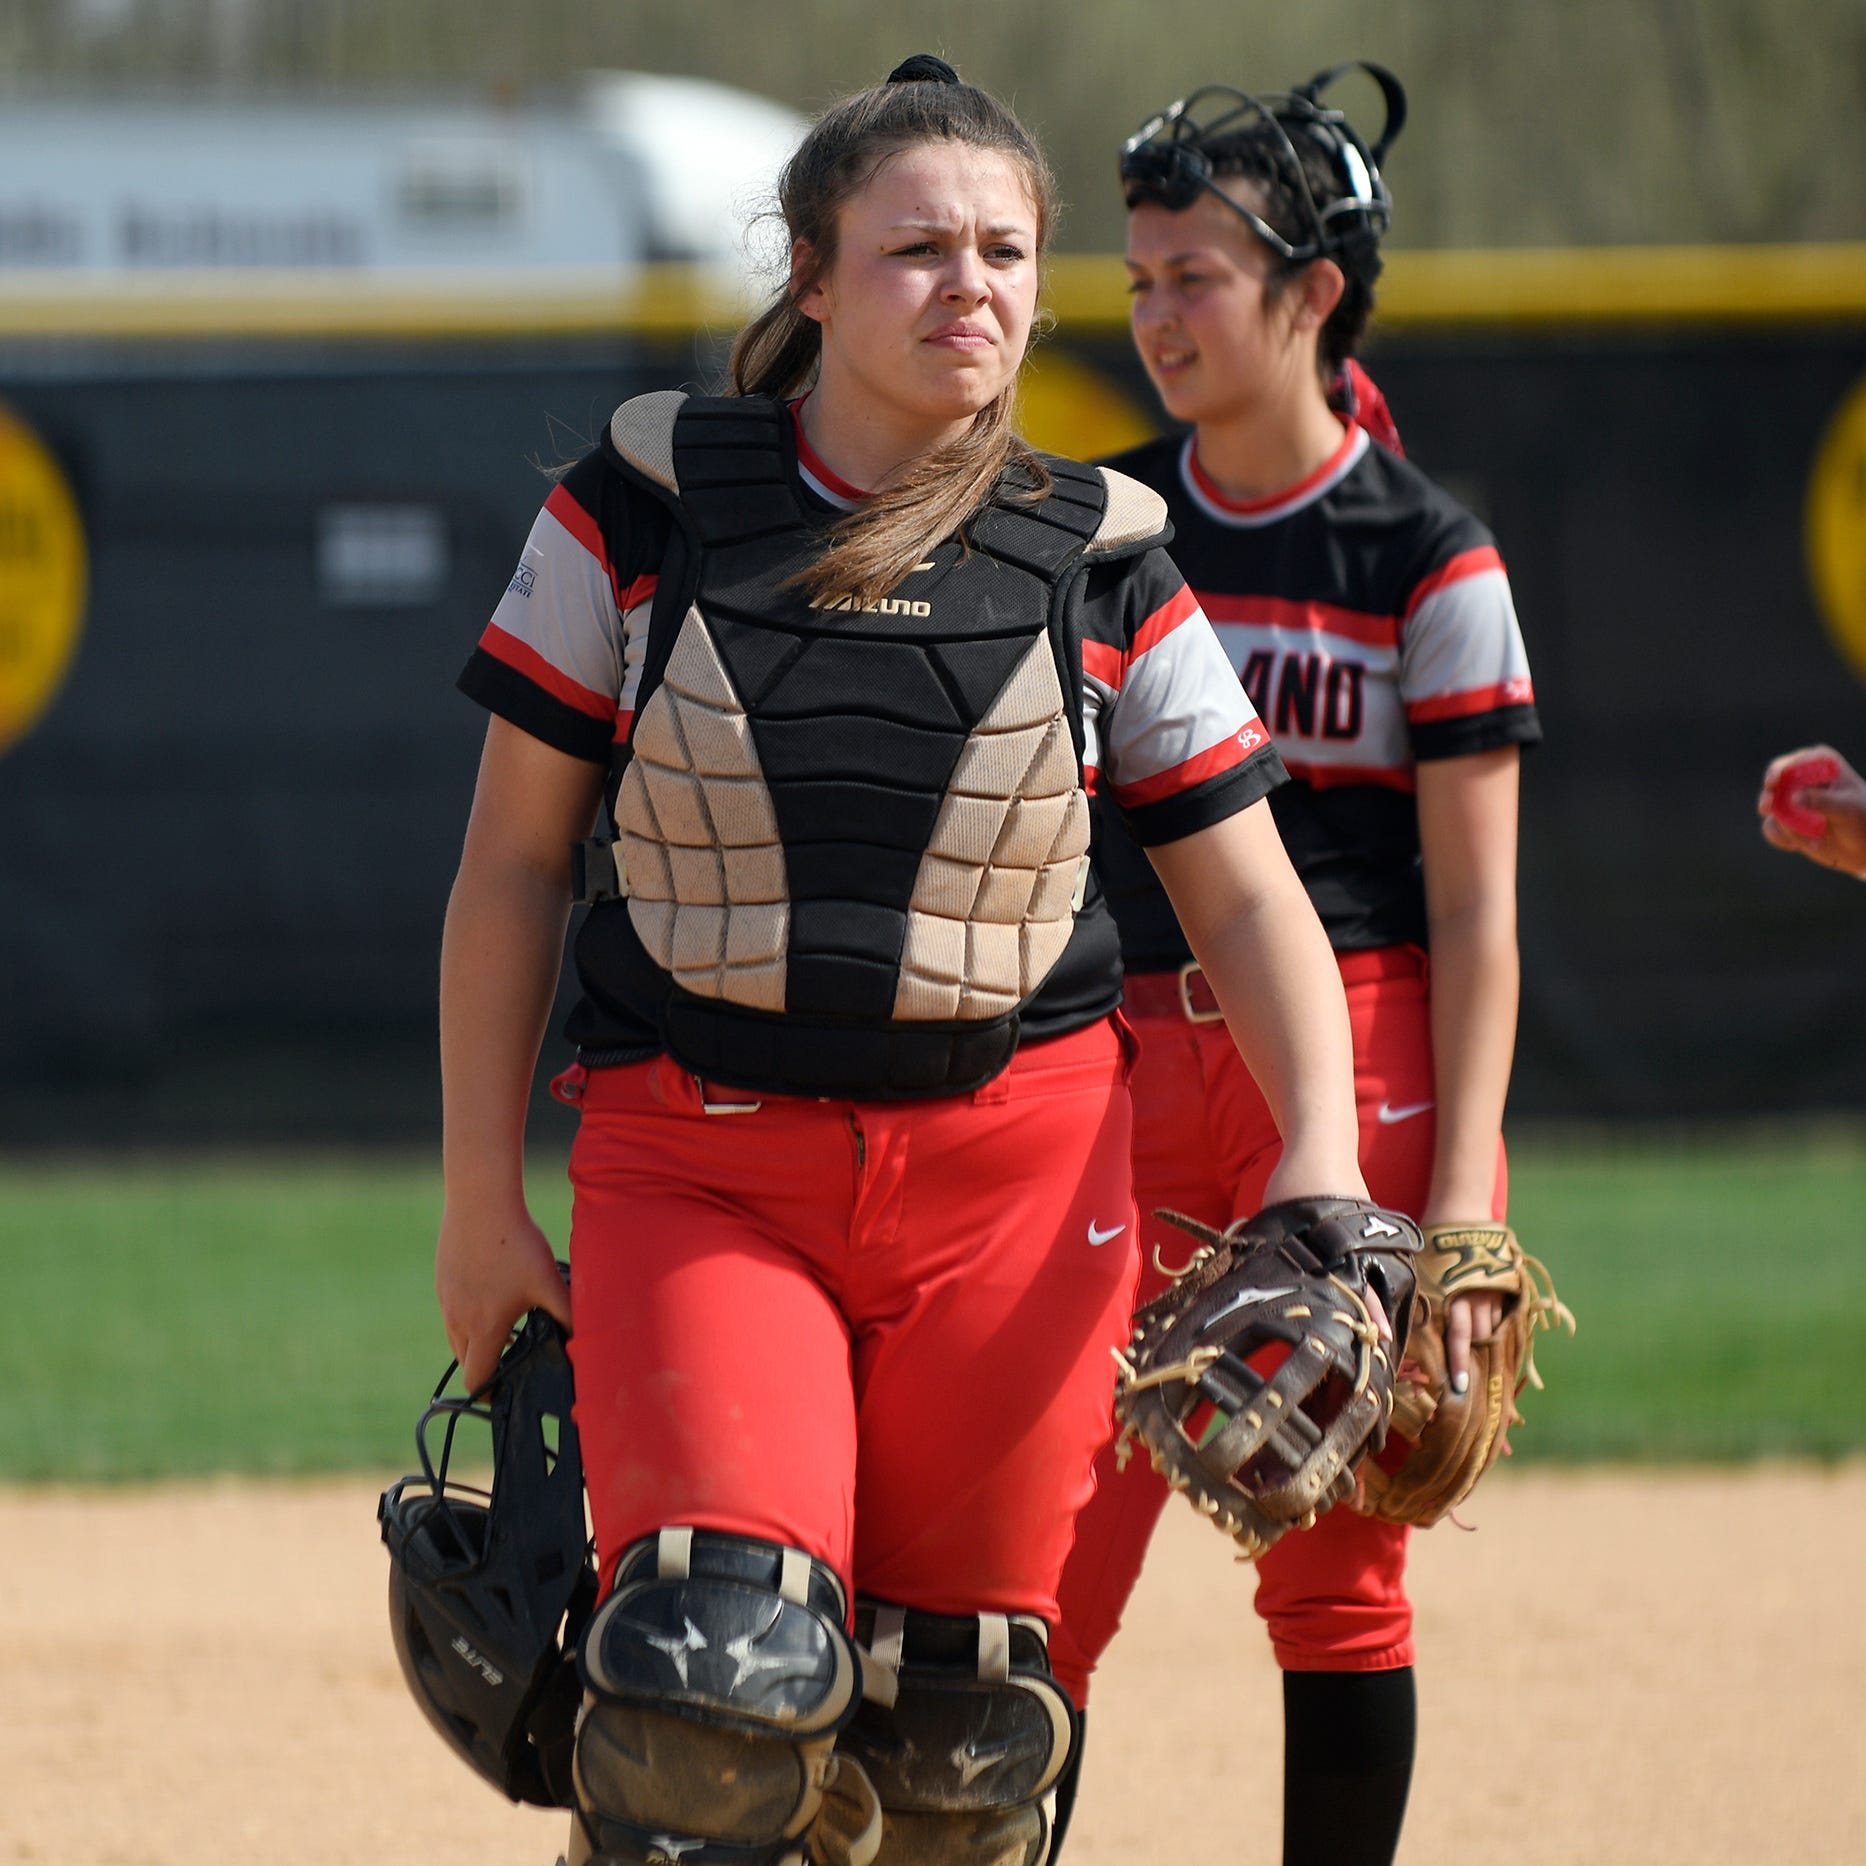 High school softball: Vineland's Coia at home behind plate